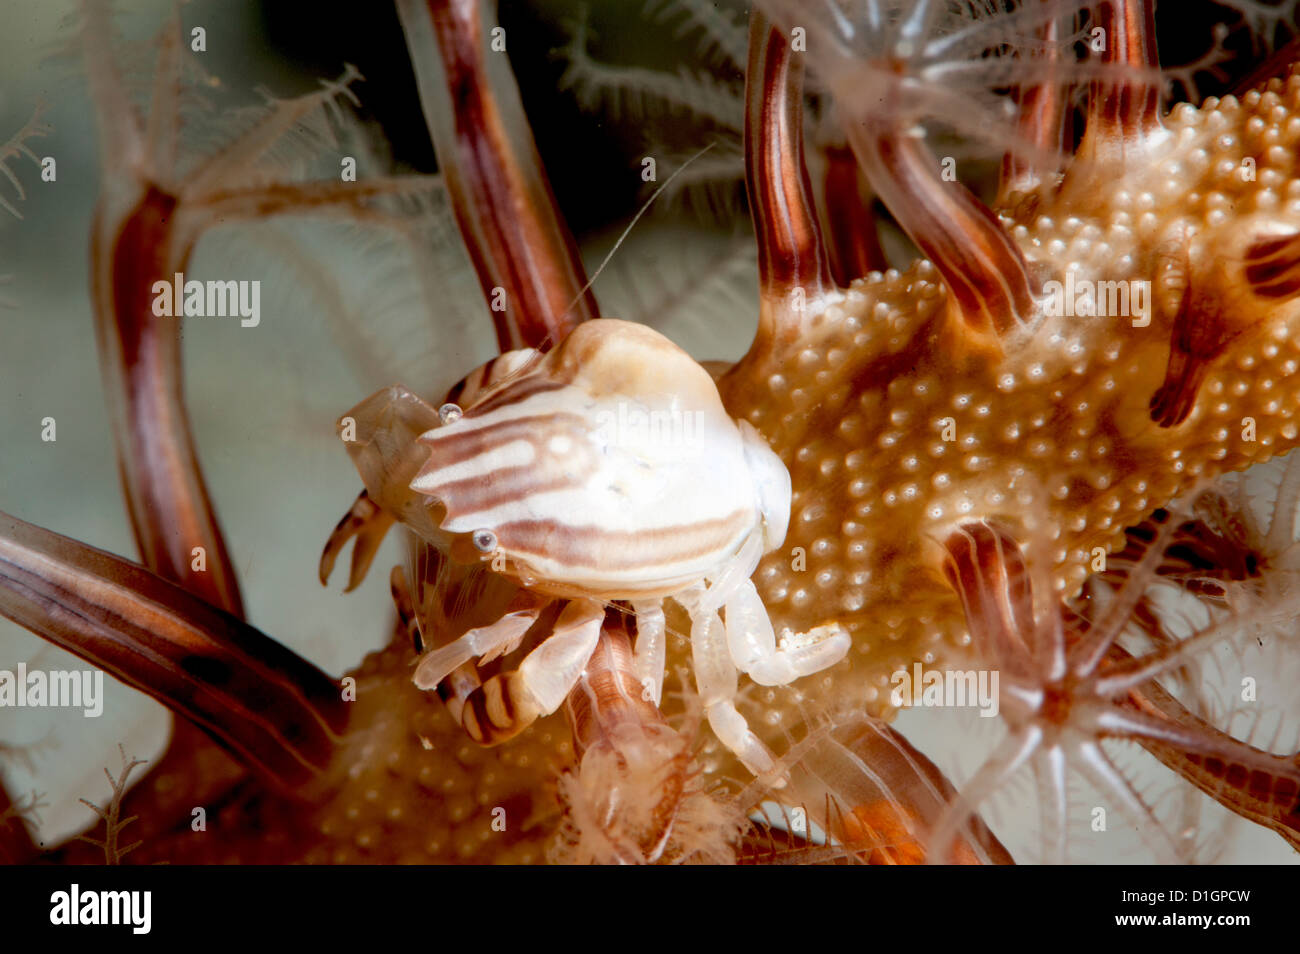 Squat lobster (Galathea sp.), Sulawesi, Indonesia, Southeast Asia, Asia - Stock Image